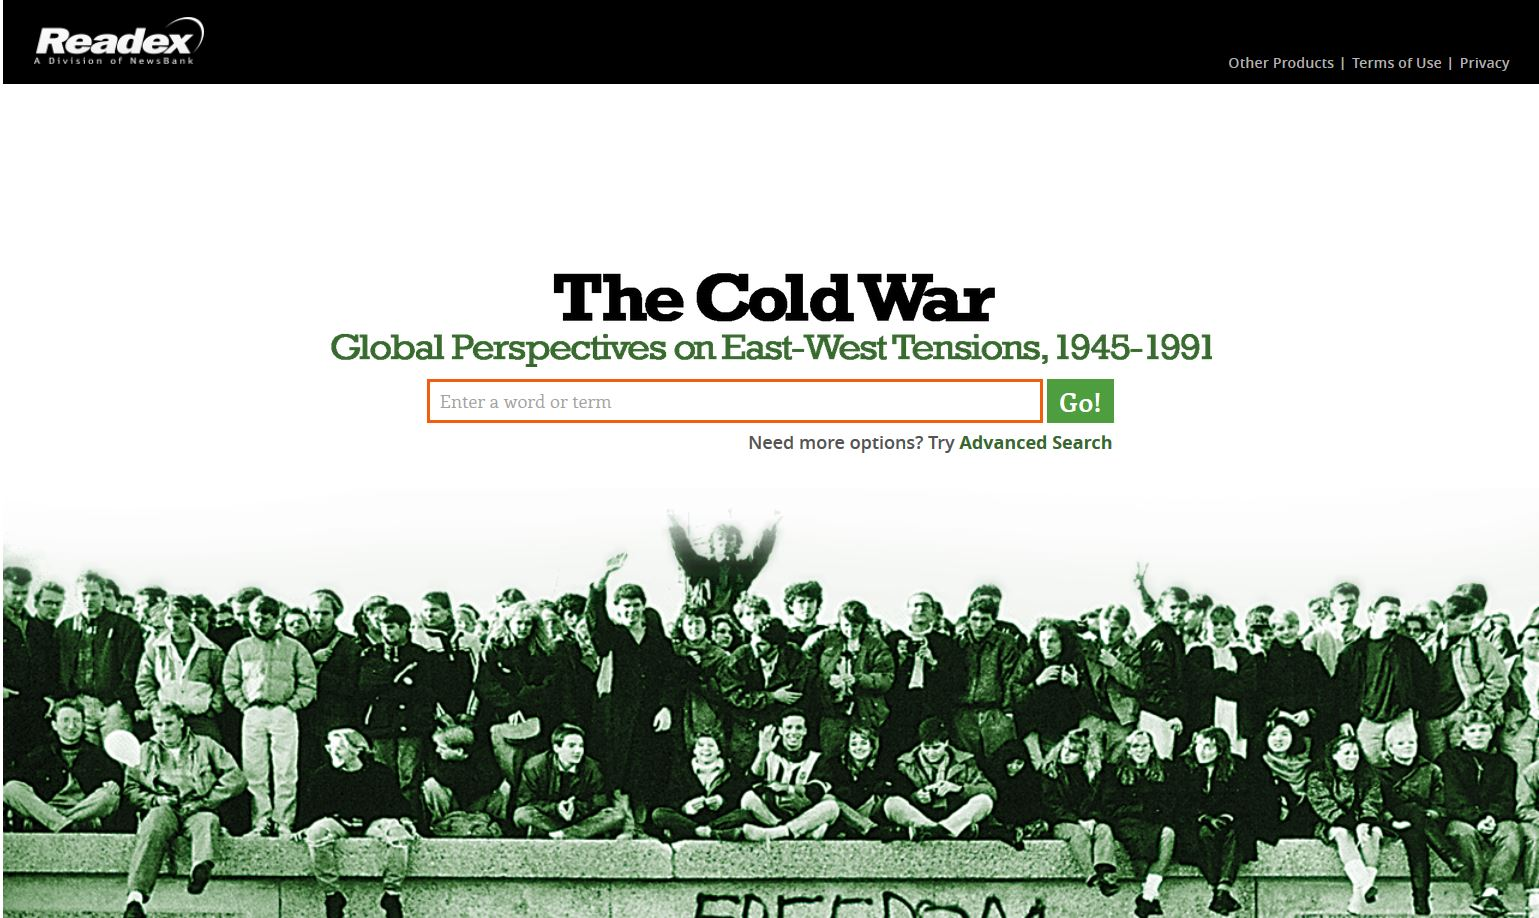 research papers on the cold war Effects and causes of the cold war essay: topic ideas and summary world war ii ended in the mid nineteen forties while it was wonderful that a violent, global conflict had come to an end, the world would be entering a new set of tensions.